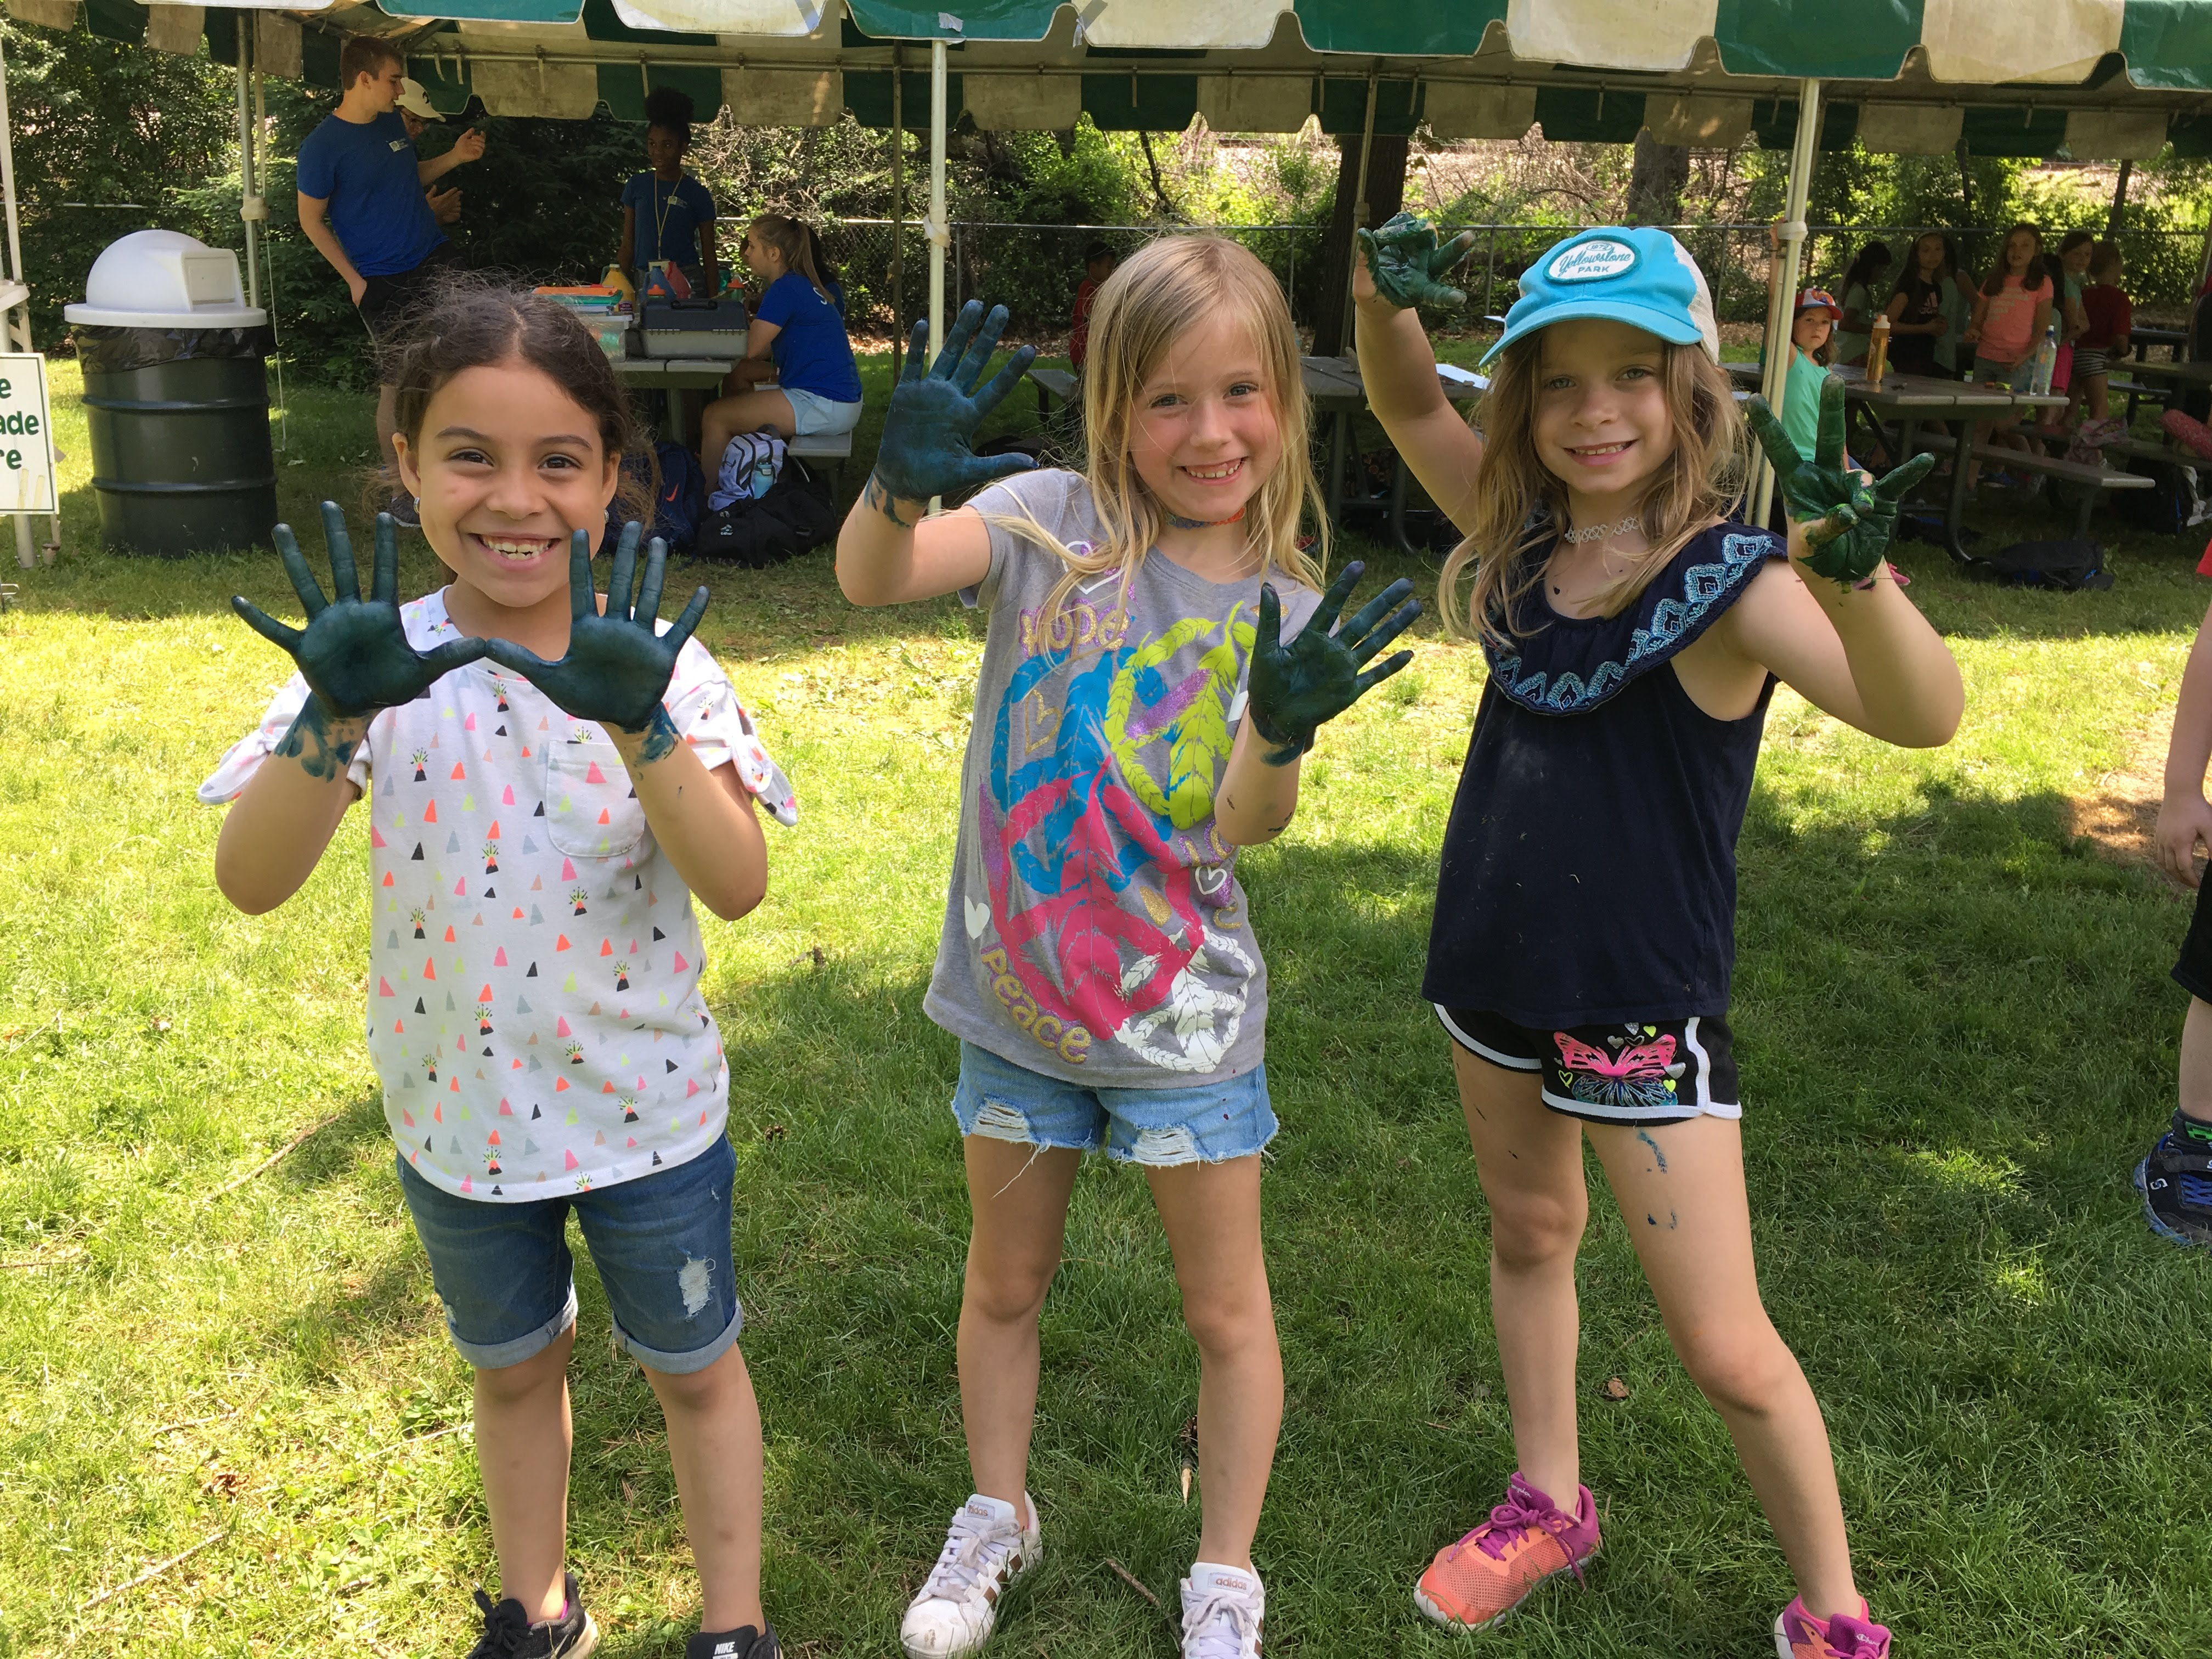 Viking Park summer camp in Gurnee